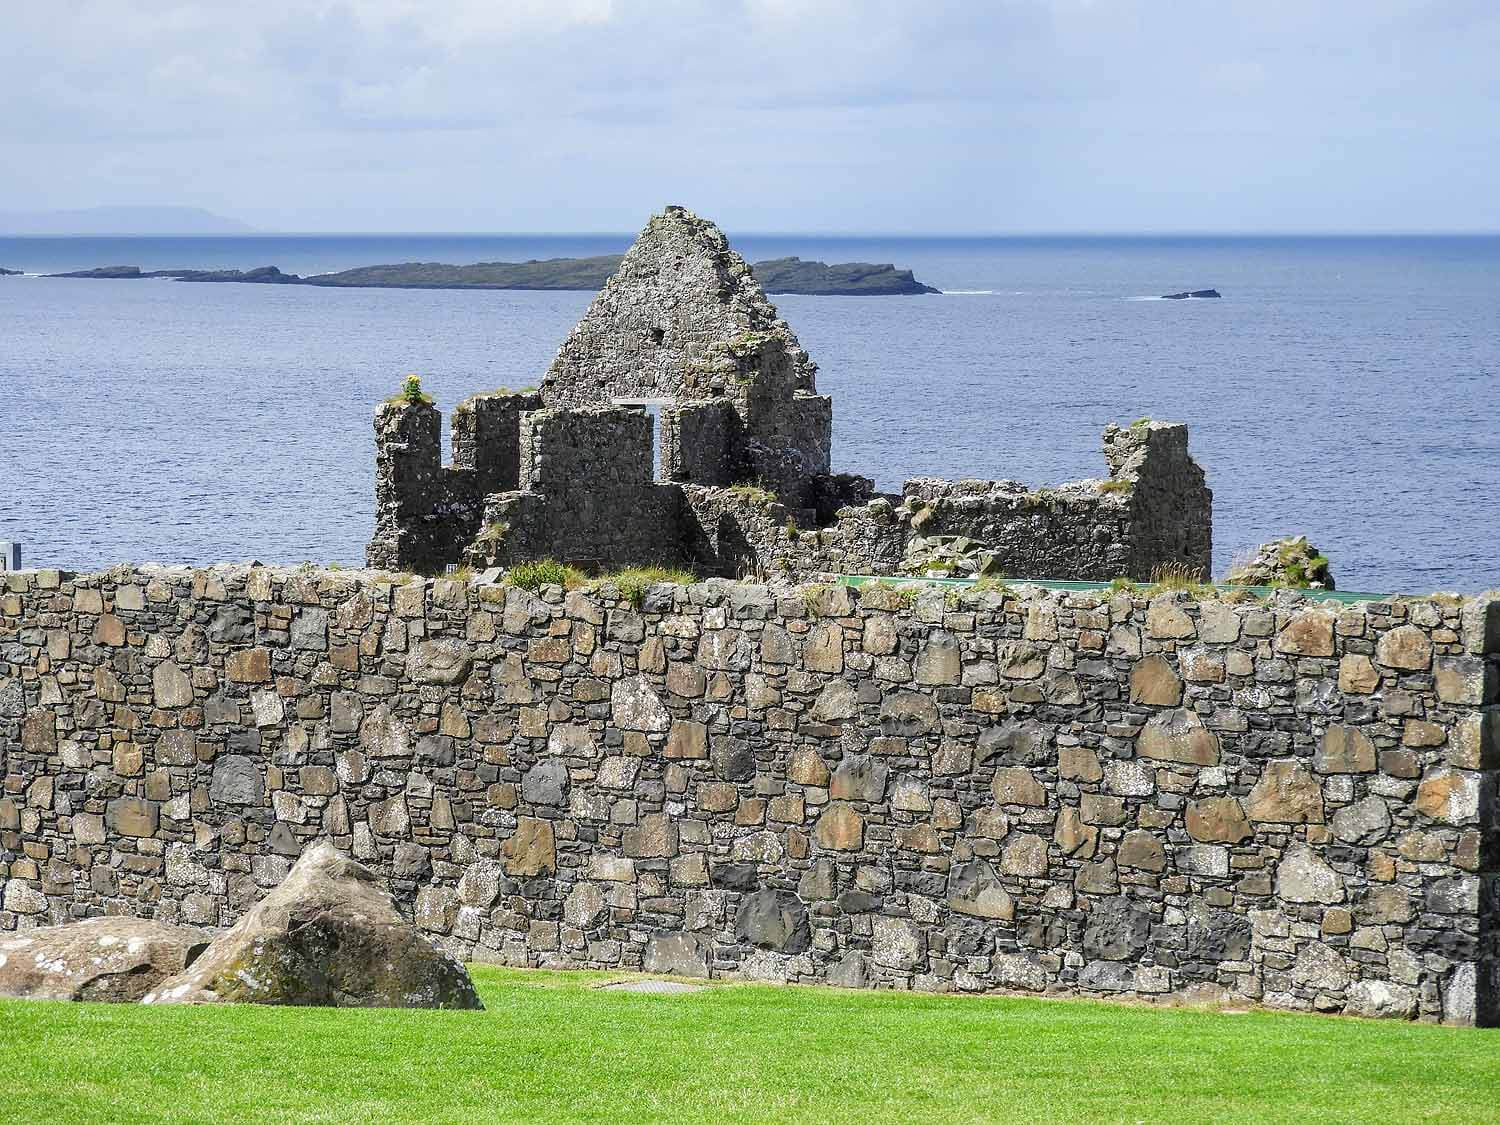 northern-ireland-coast-dunluce-castle-stone-ruins.jpg